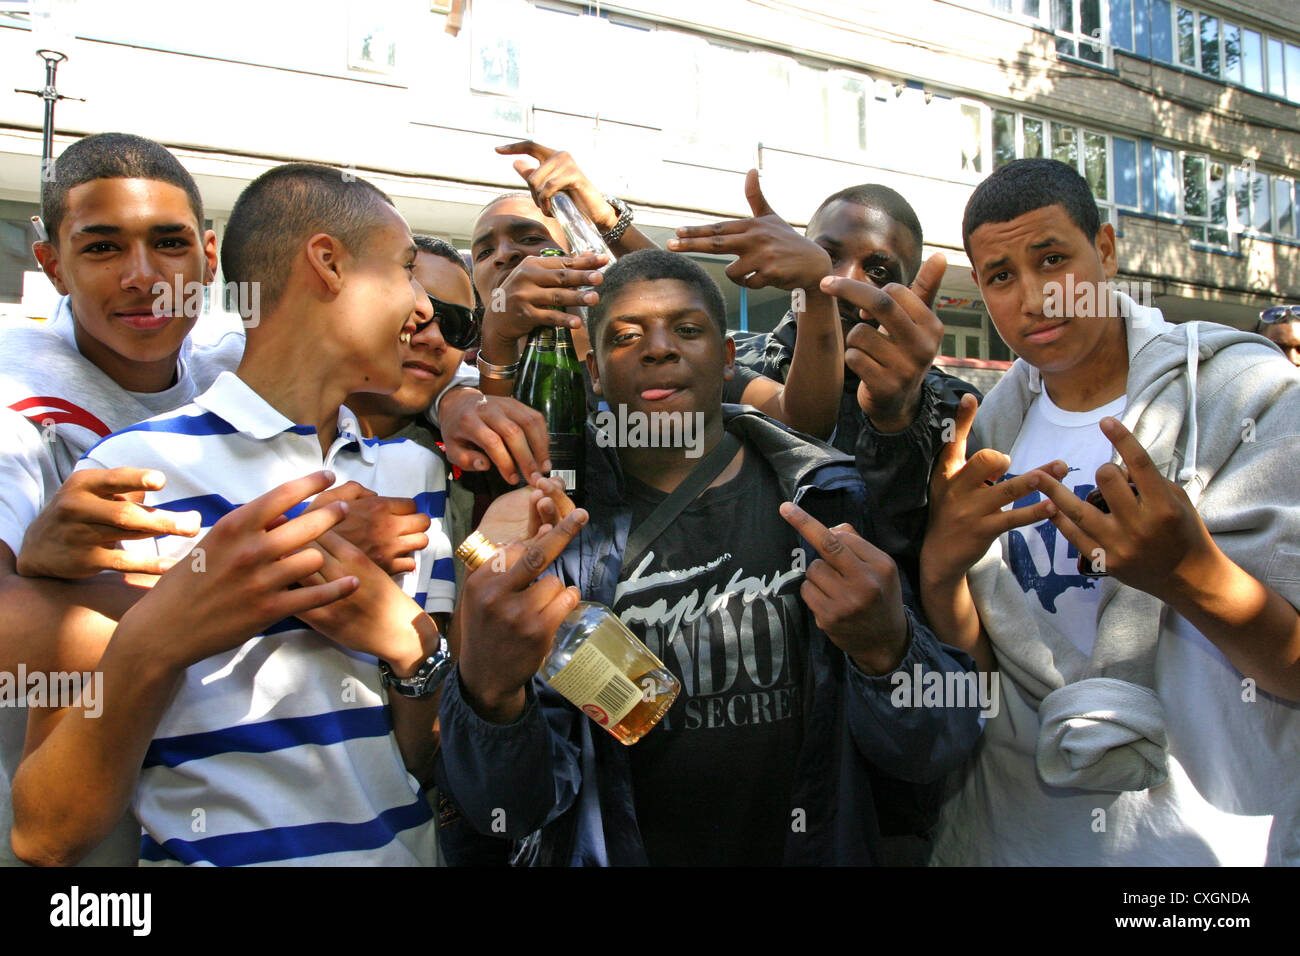 A lively group of young lads using gangsta gestures with hands and posing - Stock Image